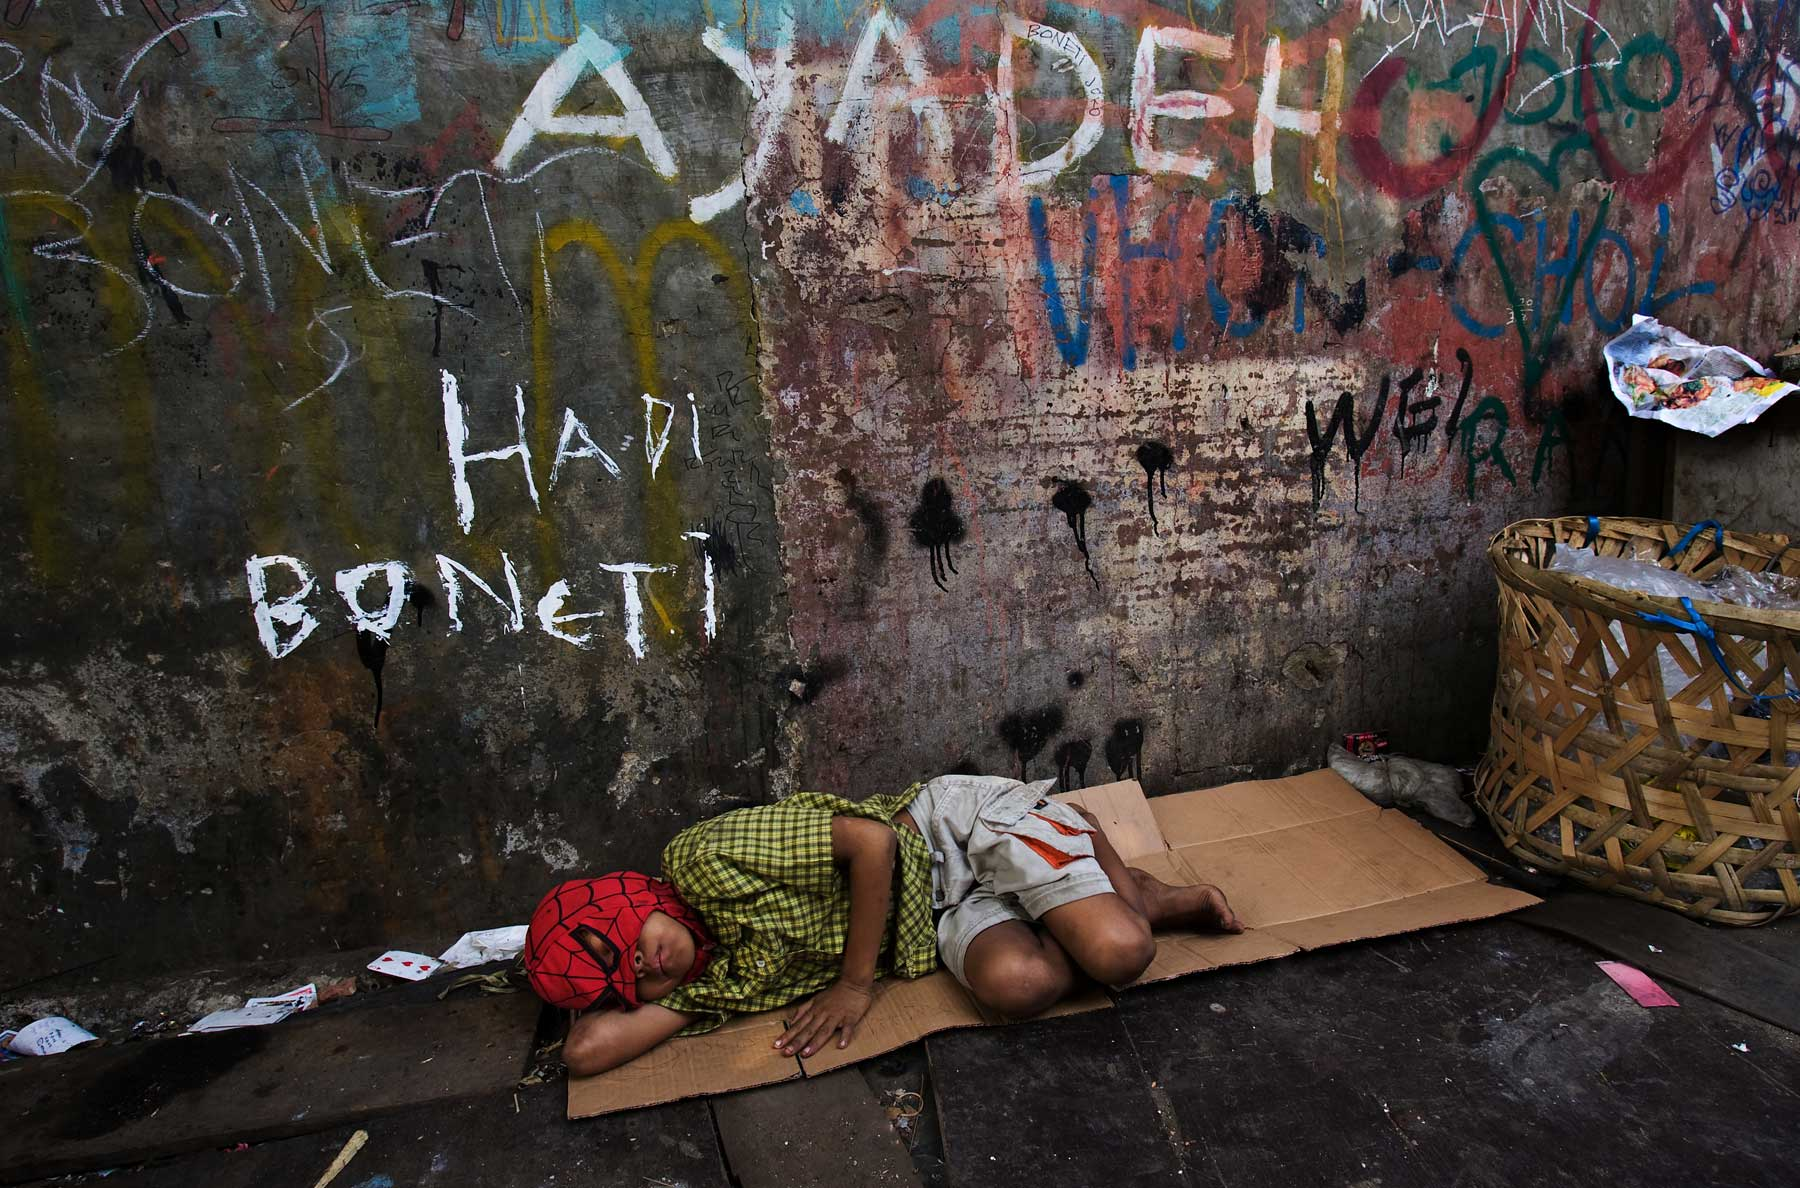 Boy sleeps with Spiderman Mask slum Jakarta Indonesia